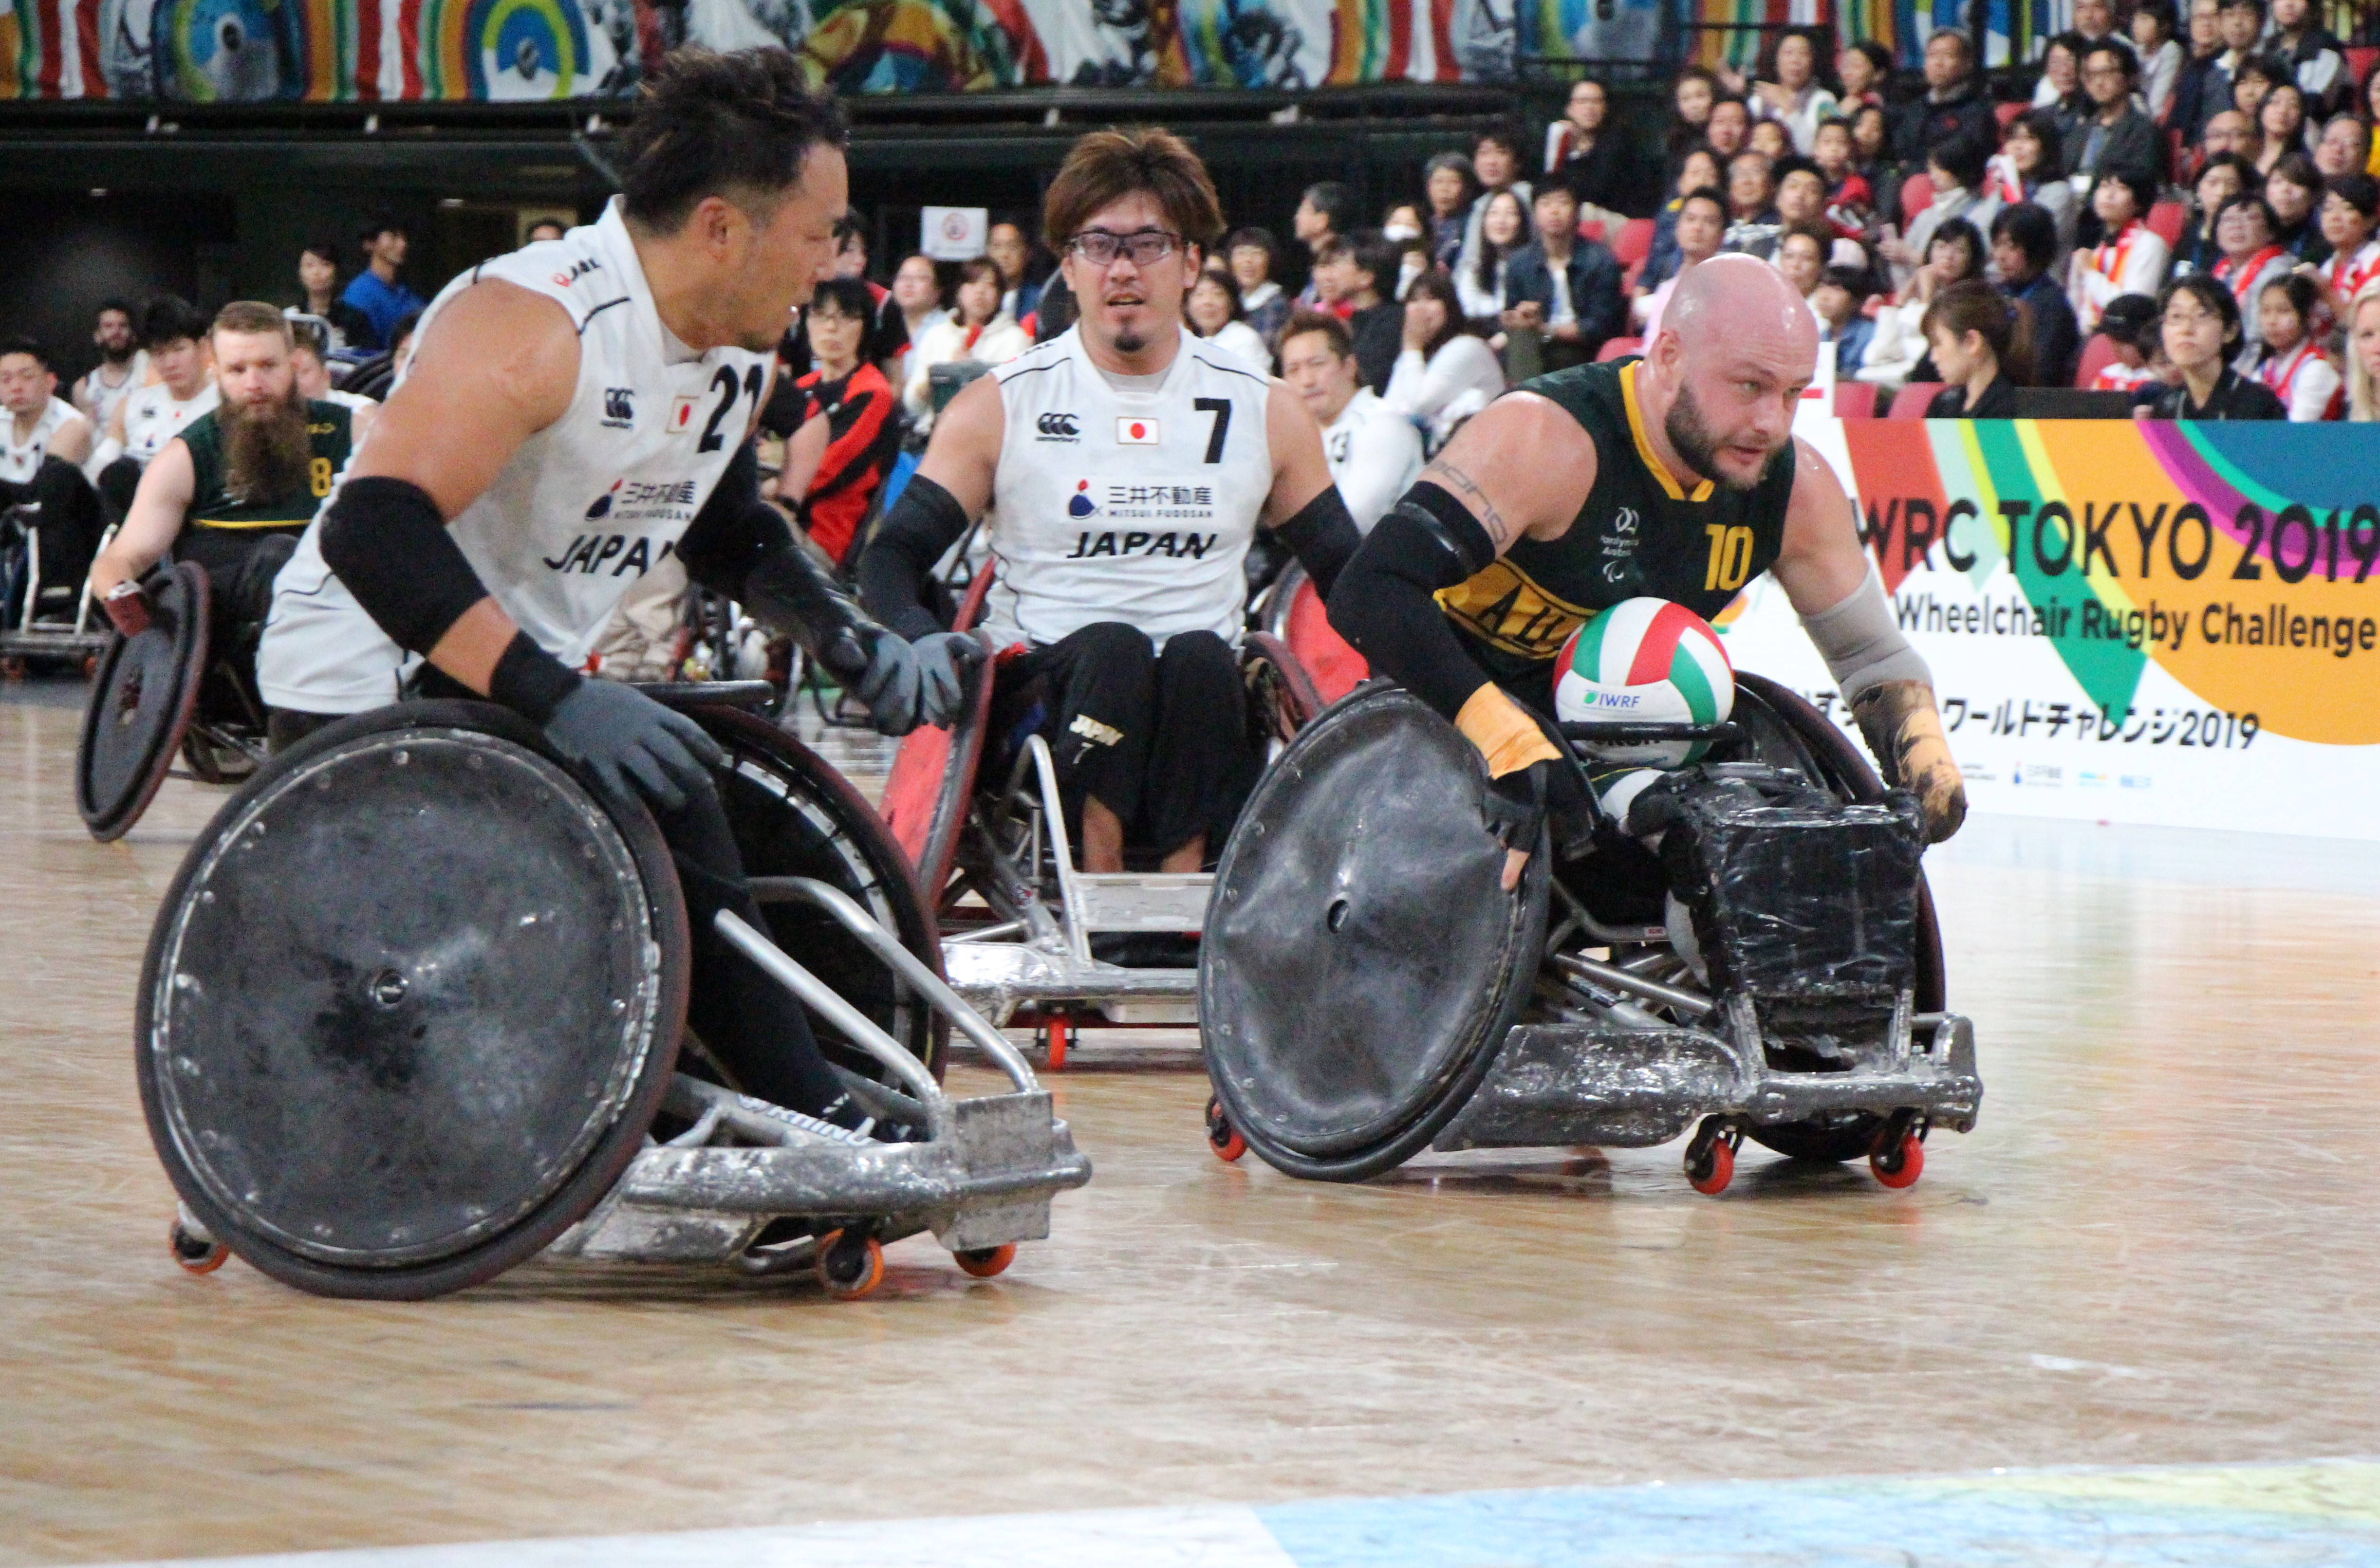 Steelers defeat Japan to advance to WWRC Gold Medal match in Tokyo